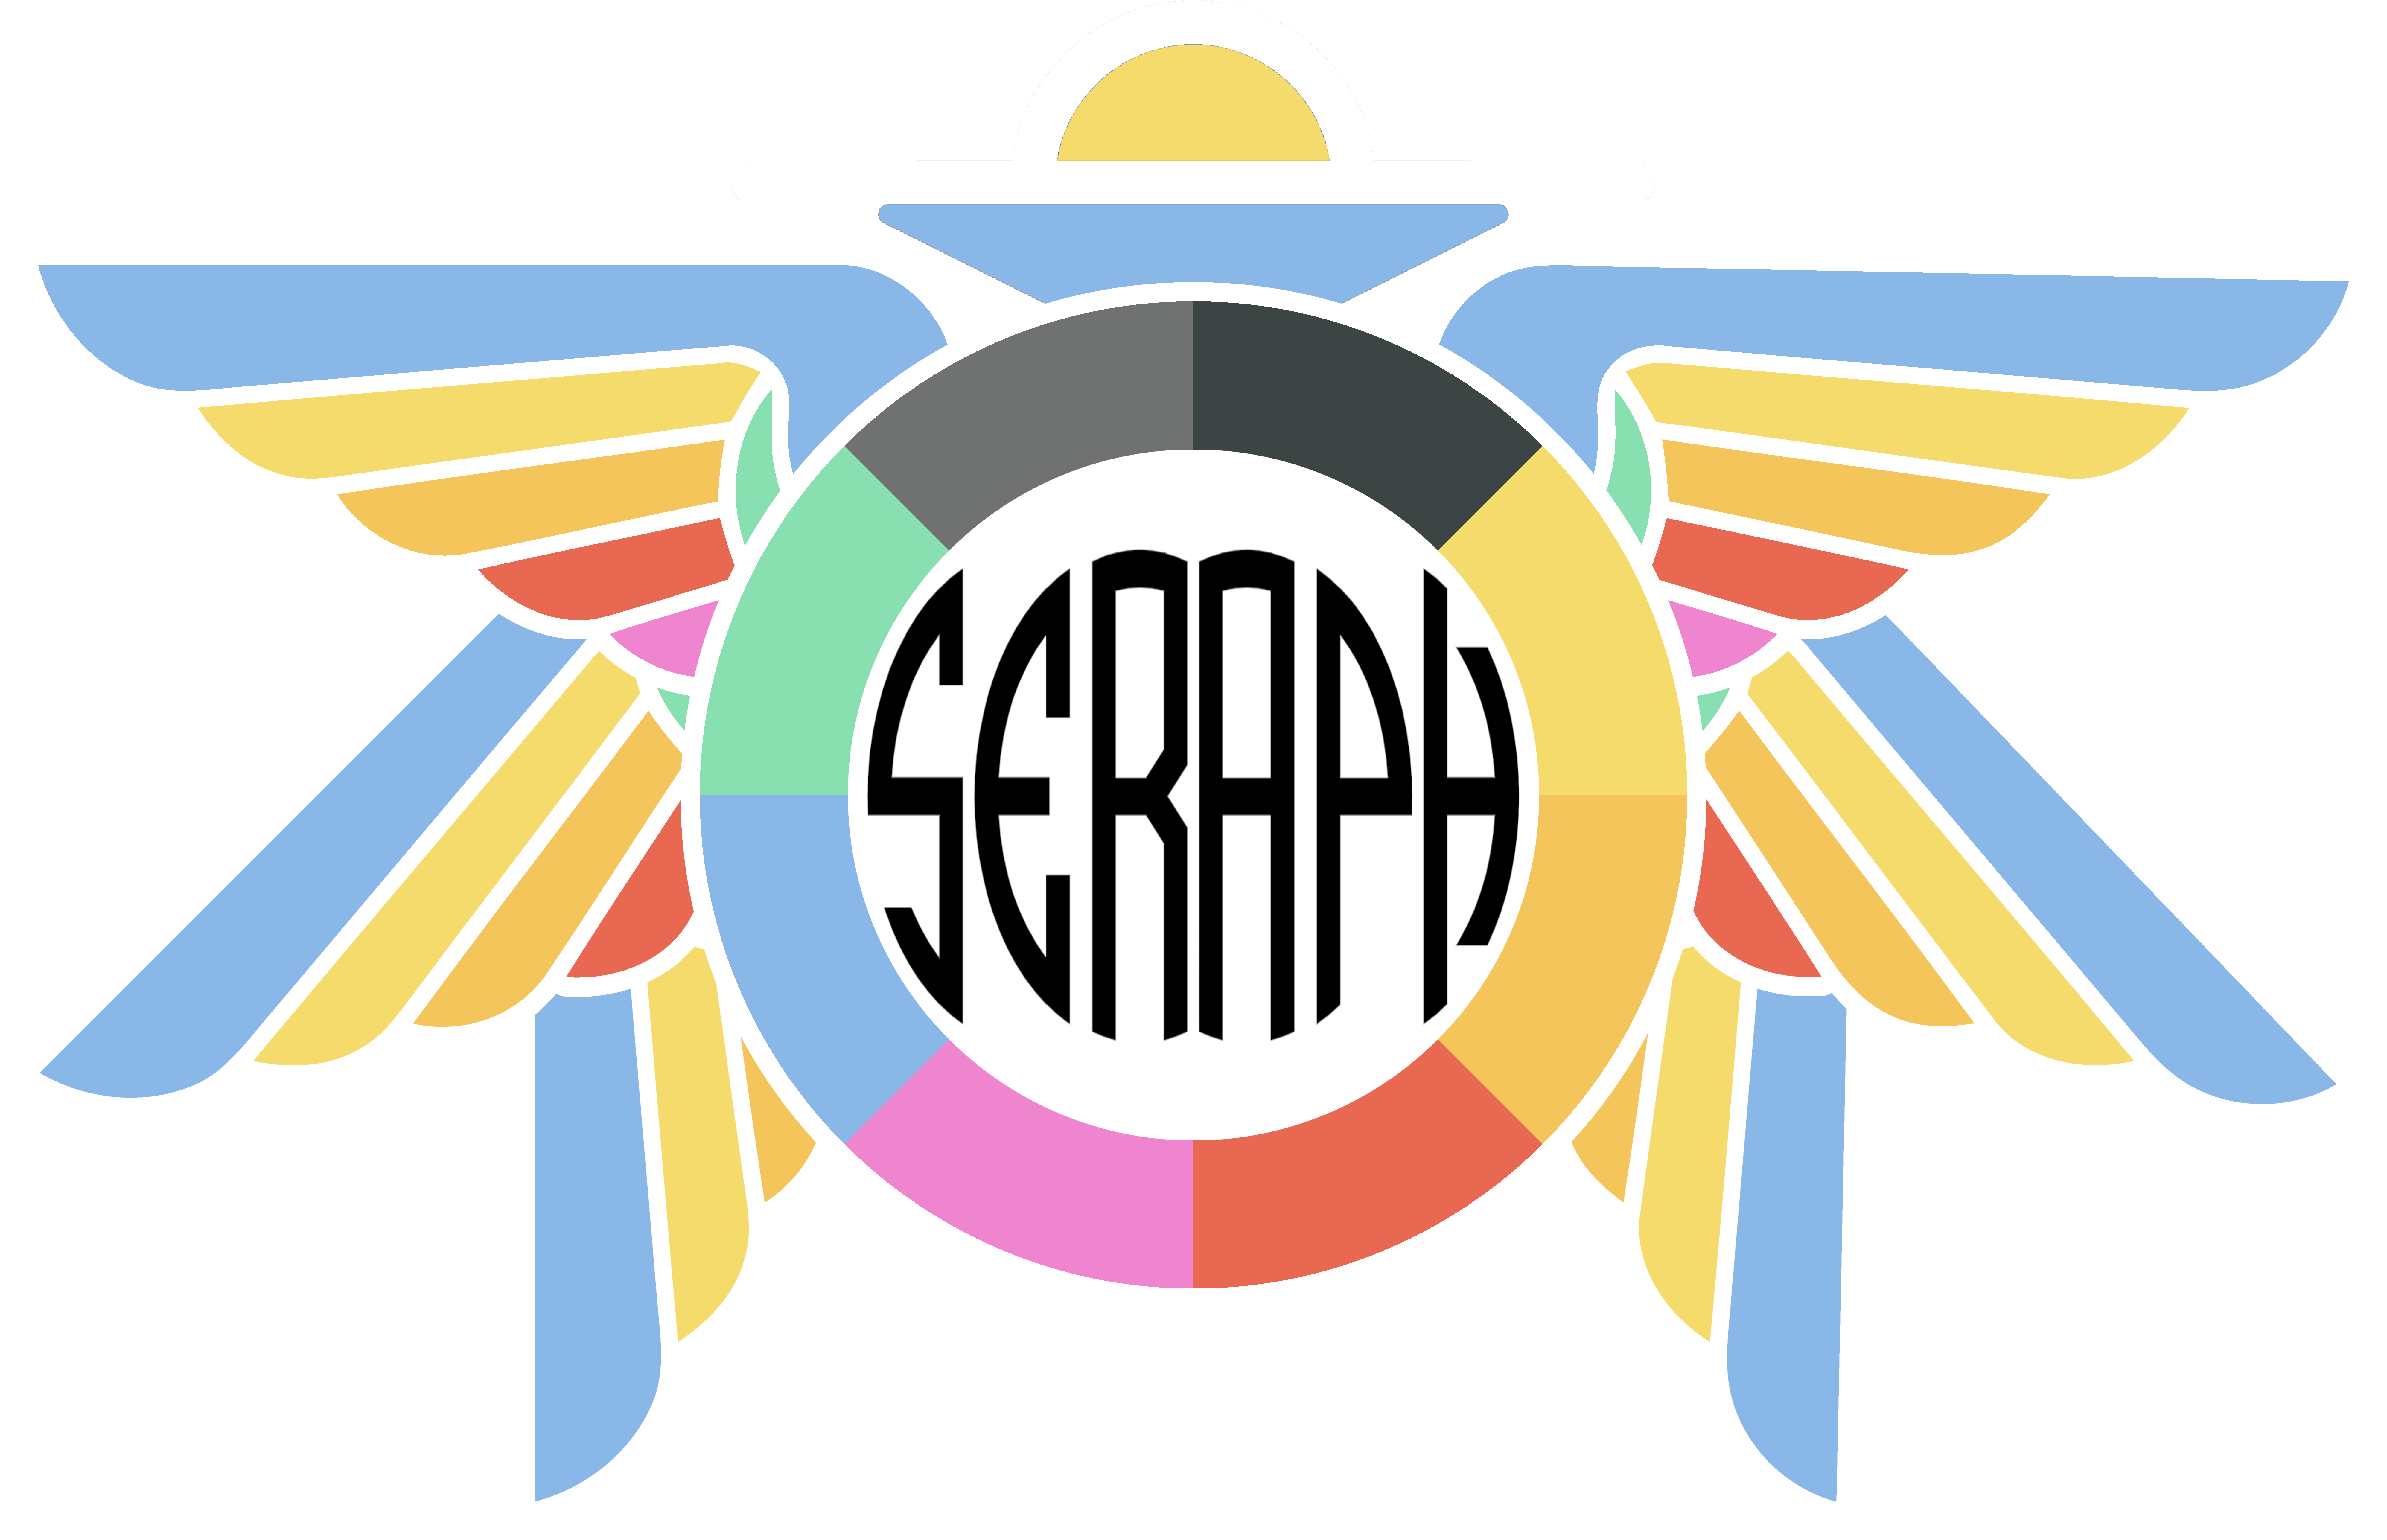 Society For Ethical Reform Through Aid Protection And Humanitarianism Far Verona Wiki Fandom